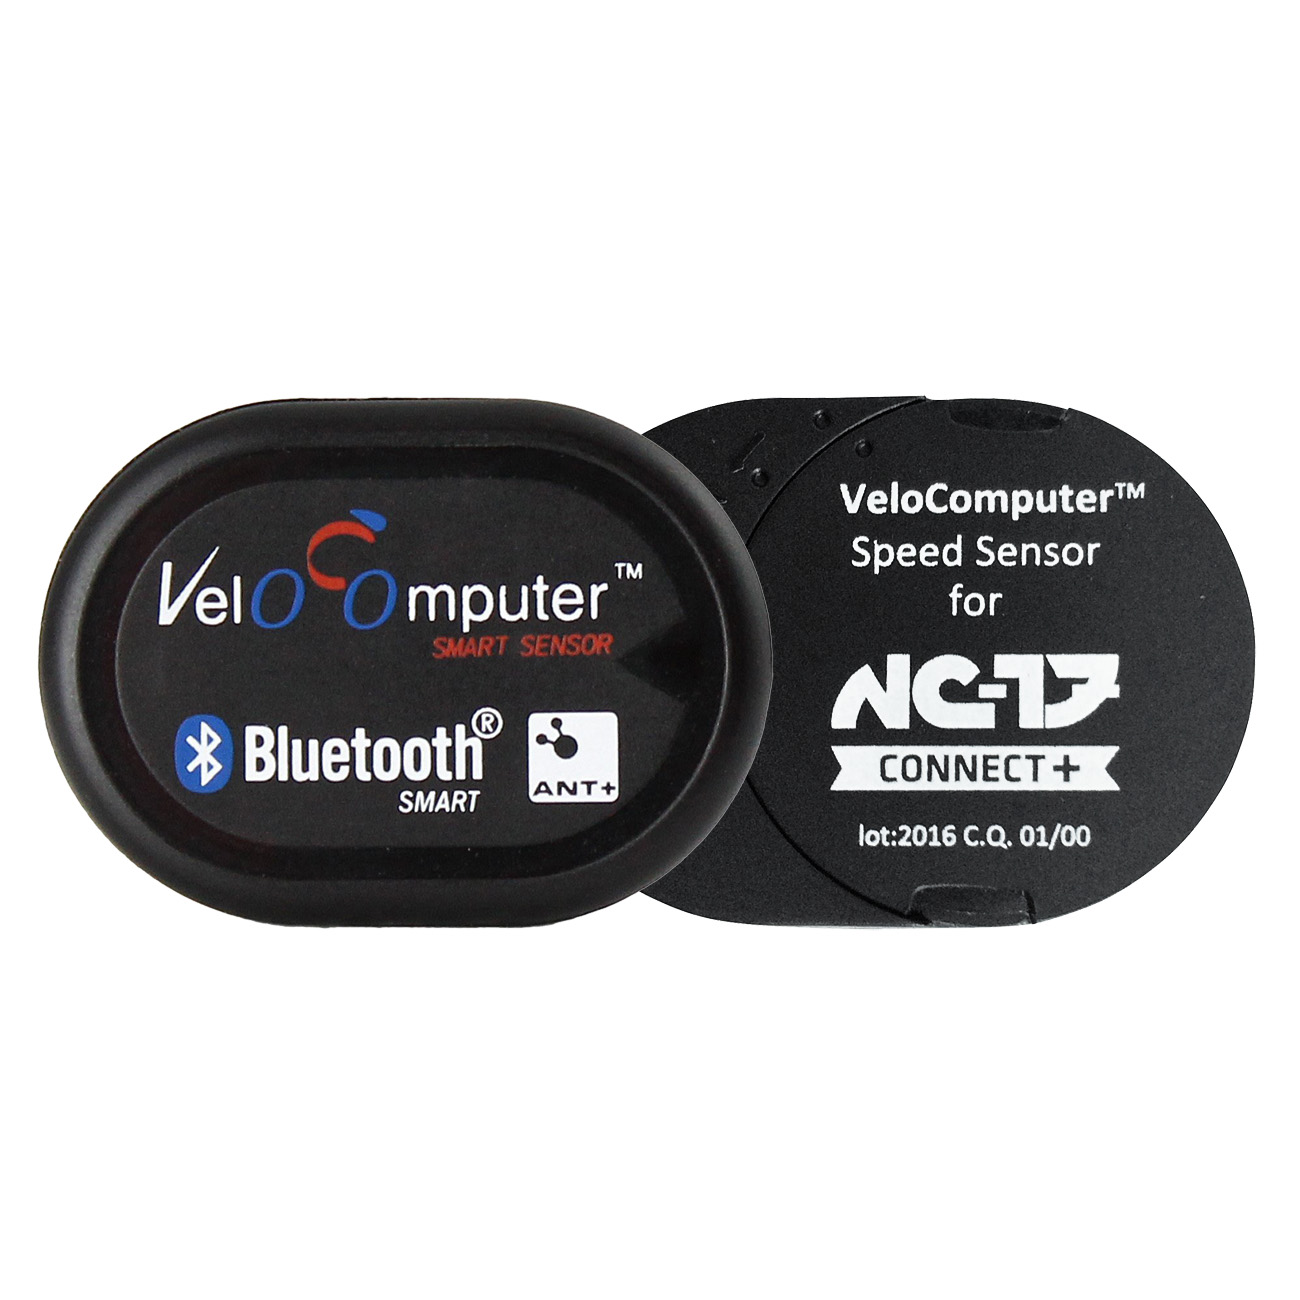 NC-17 Connect VeloComputer VC#5.1<br/>Speed Sensor, ANT+ und Bluetooth 4.0<br/>&nbsp;&nbsp;